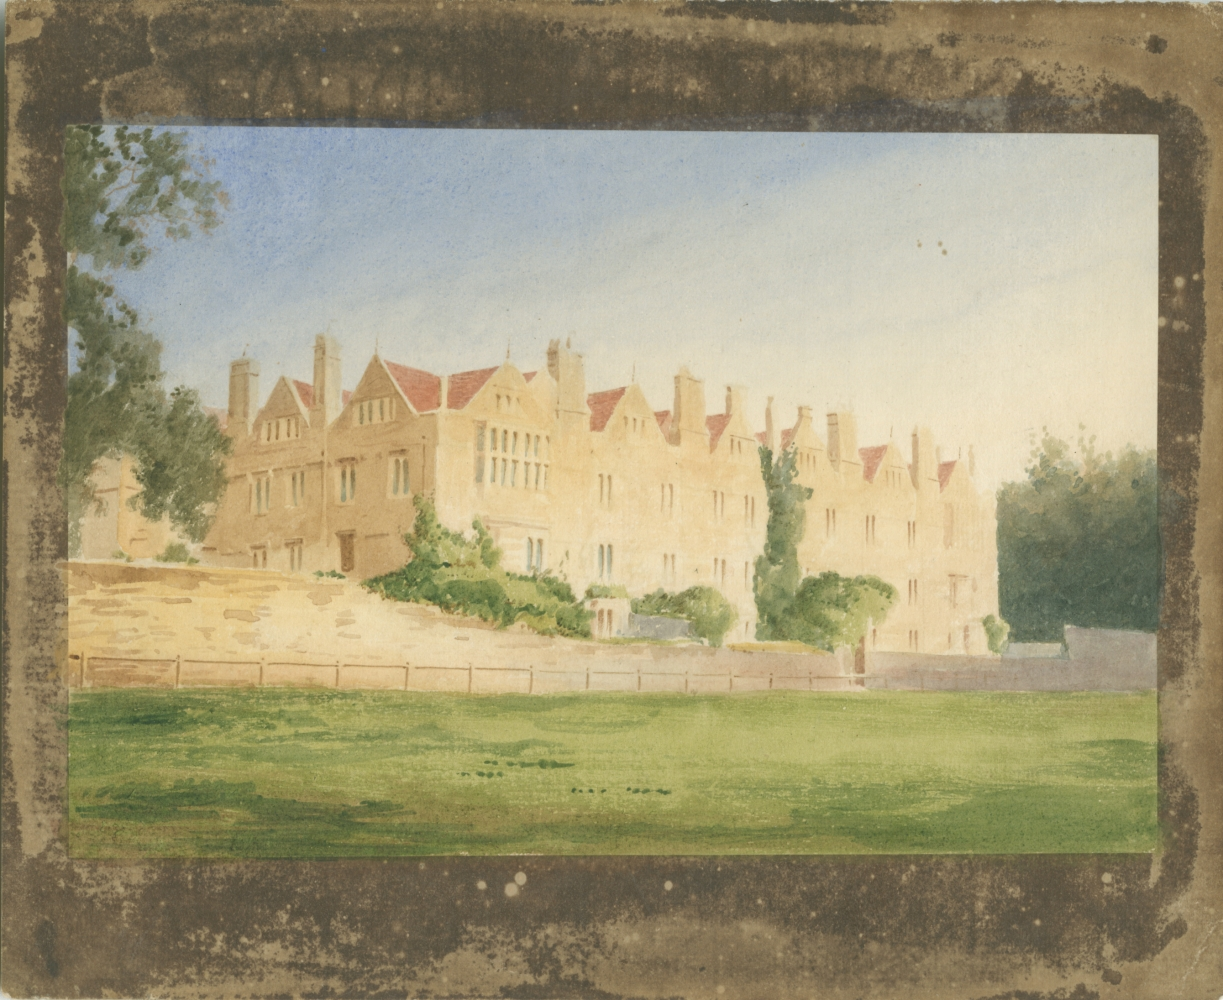 """William Henry Fox TALBOT (English, 1800-1877) Merton College from the fields, Oxford, circa 1843 Hand colored (possibly by André Mansion) salt print, from a calotype negative 13.6 x 20.2 cm on 18.7 x 22.7 cm paper Inscribed """"M' and """"X"""" and [illegible] in pencil on verso"""